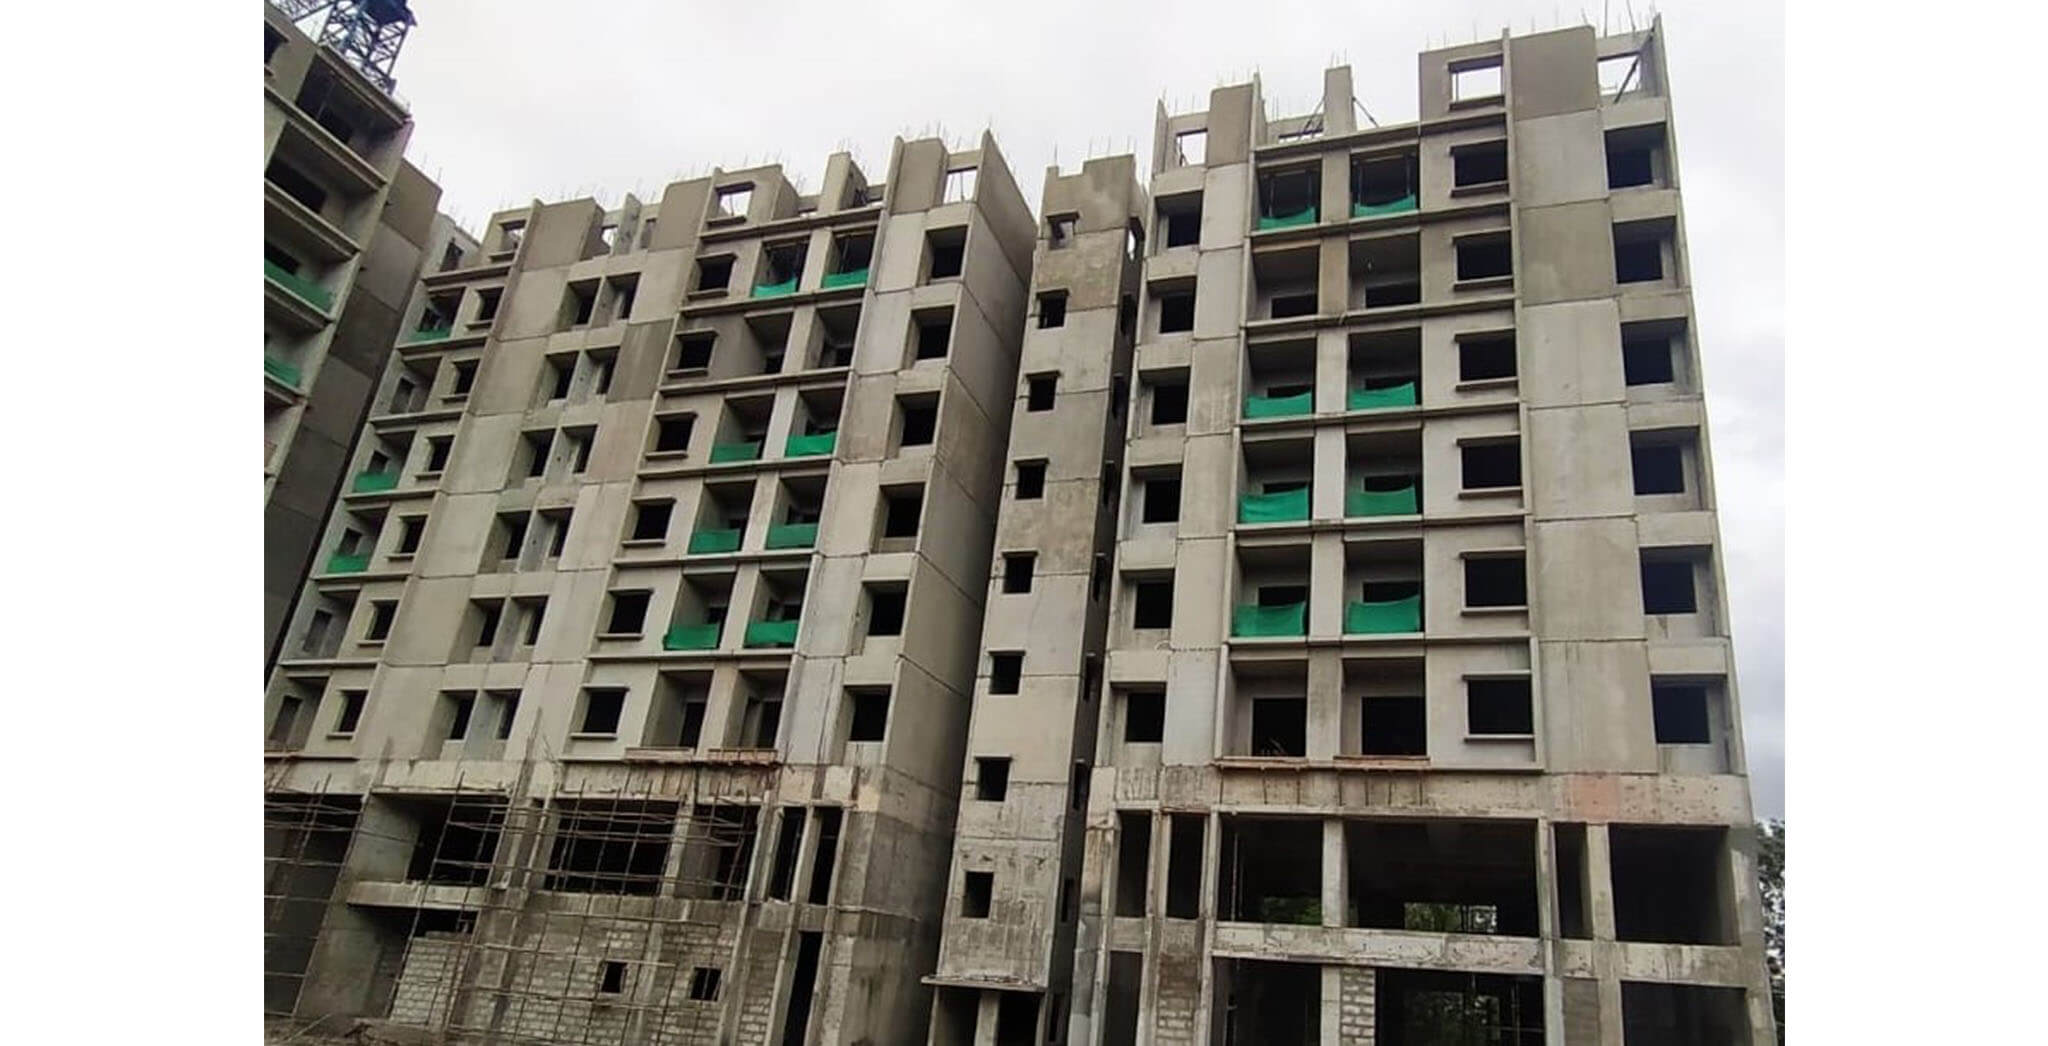 Jun 2021 - B-wing: On commencement of seventh floor slab